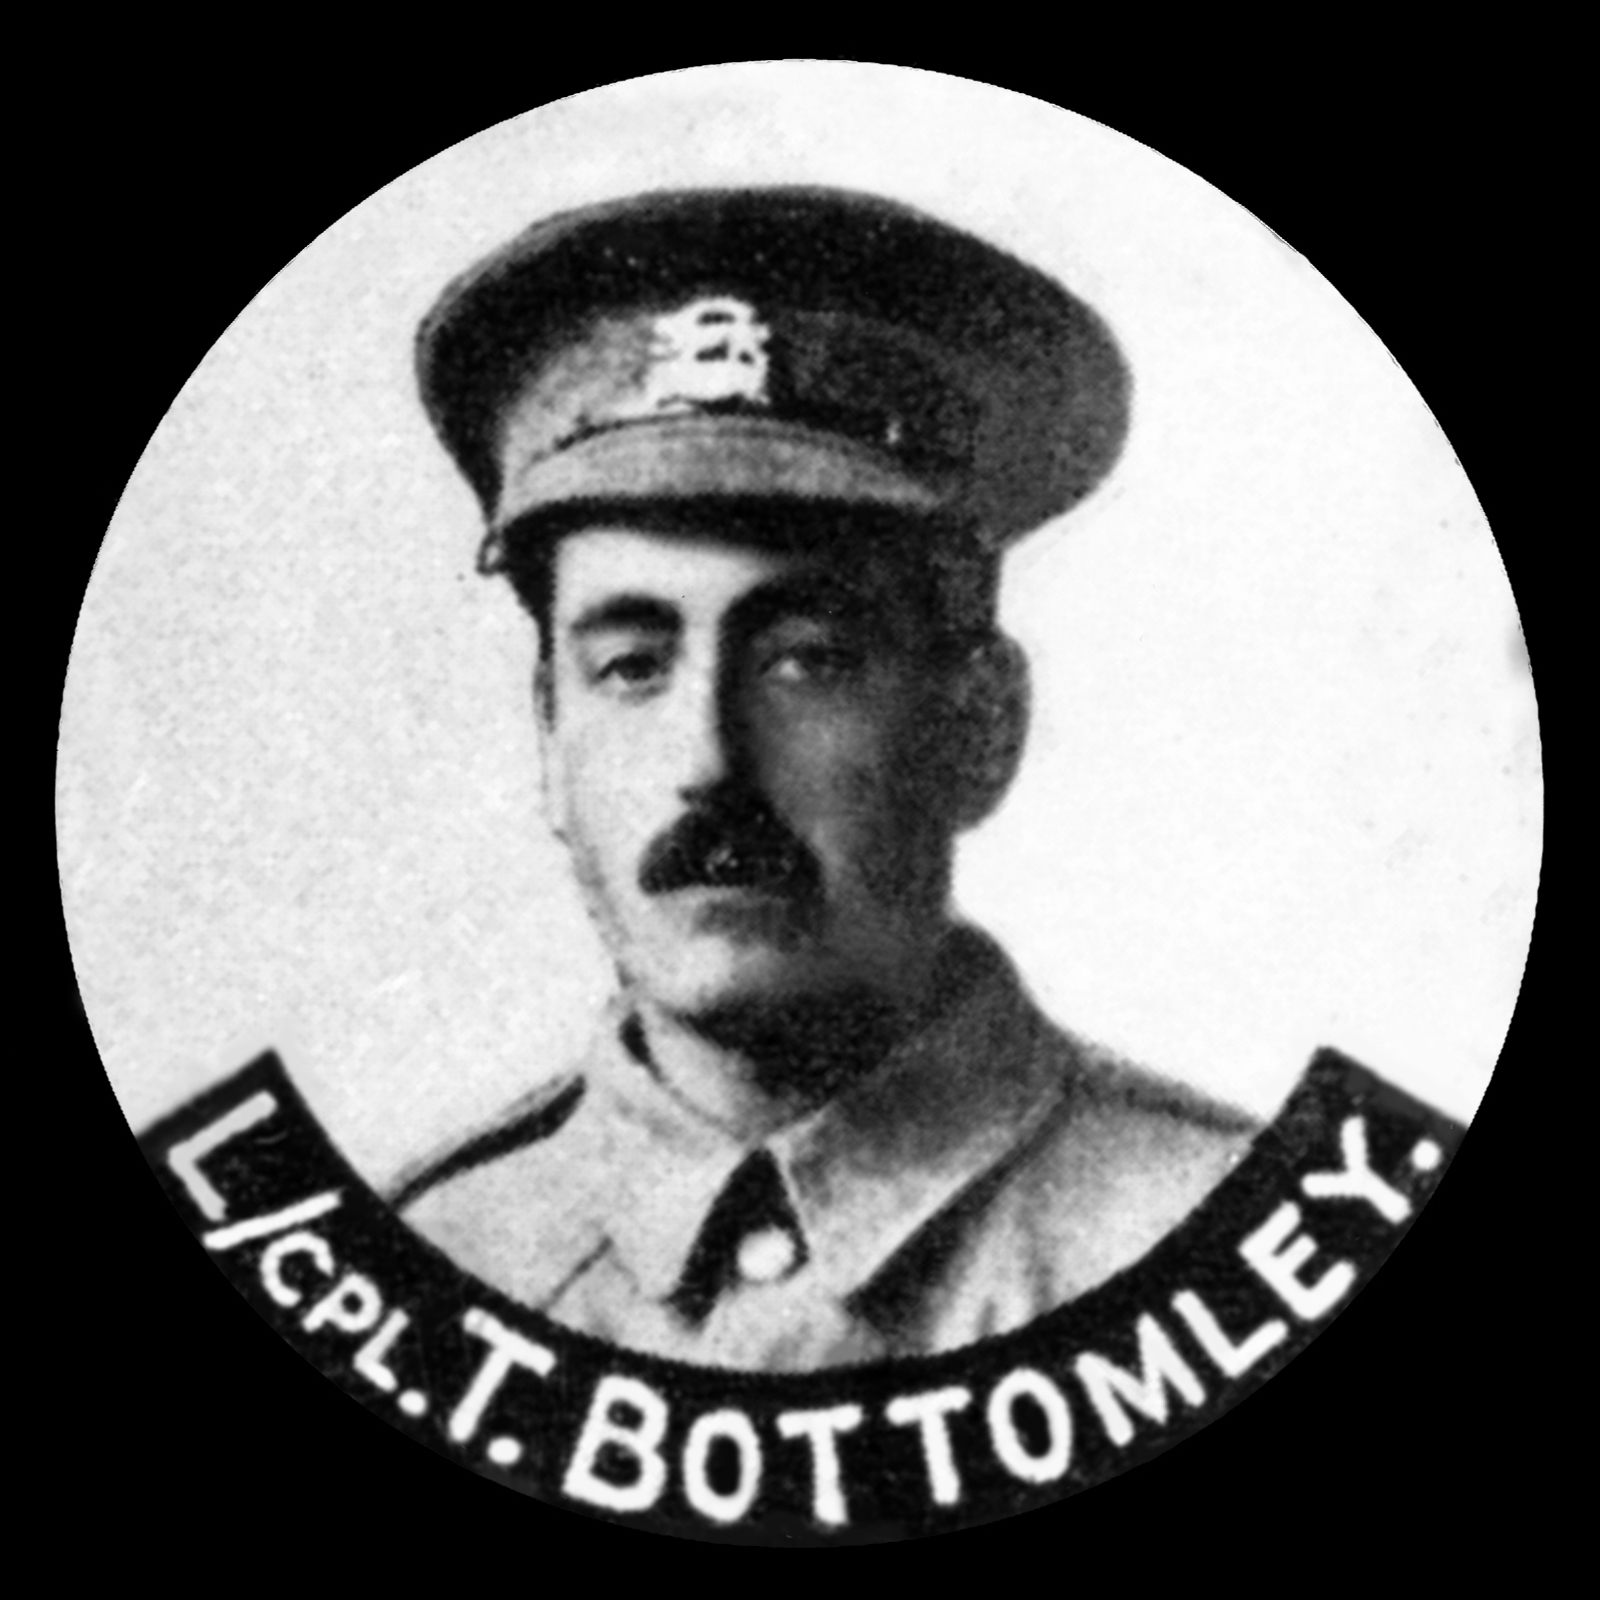 BOTTOMLEY Thomas